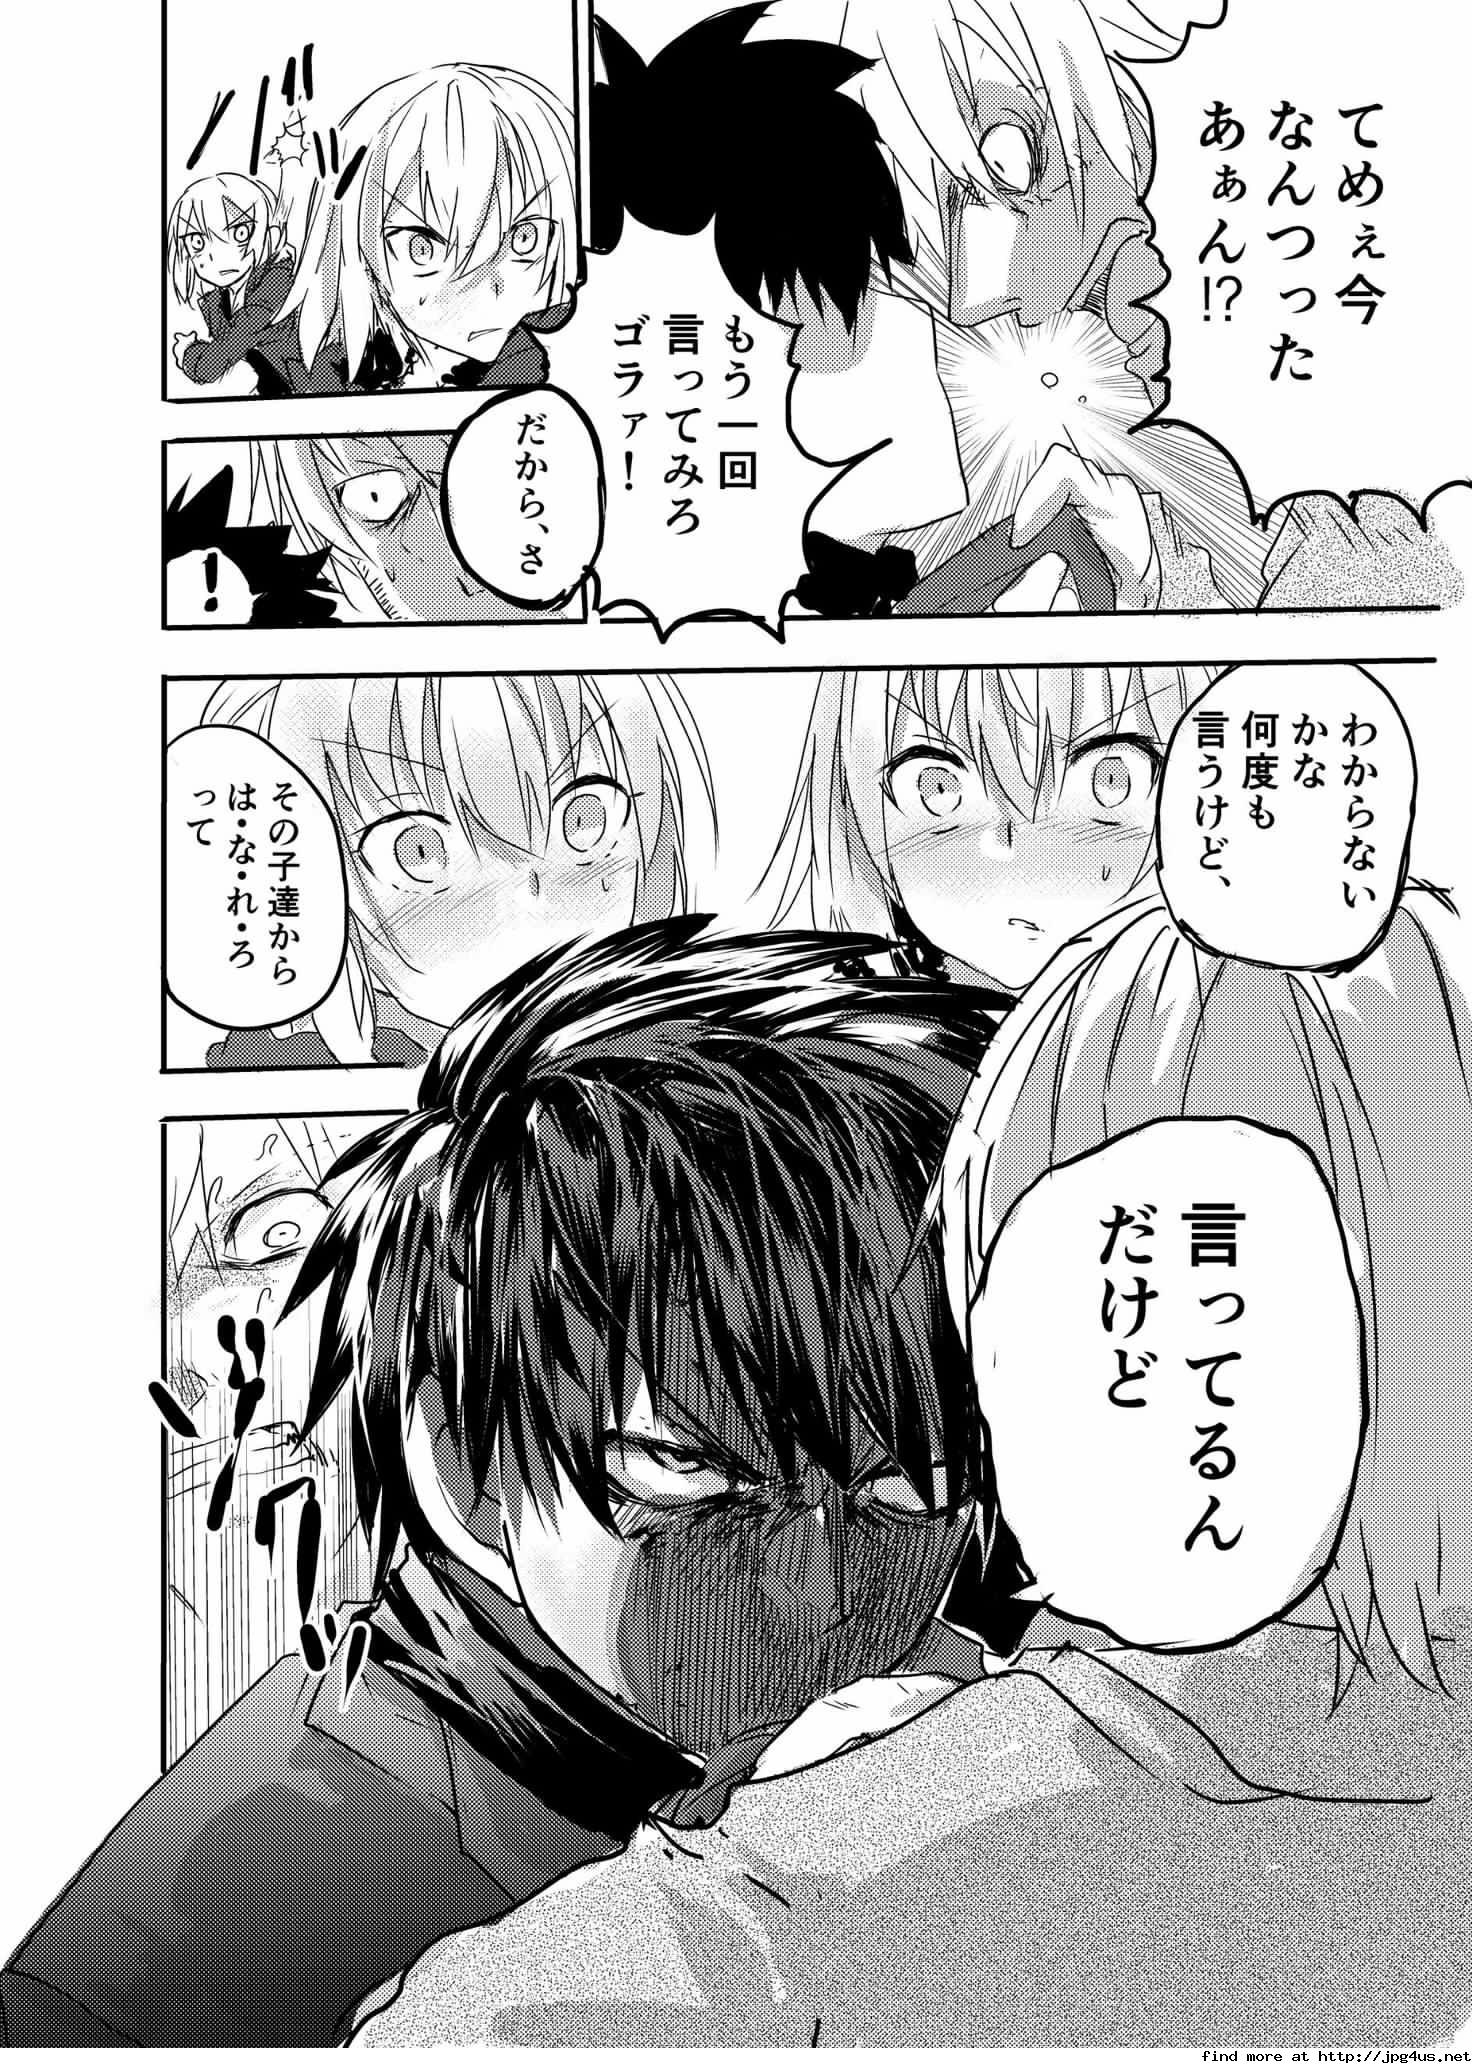 Fate/Grand Order まったりスレ4887 ->画像>267枚